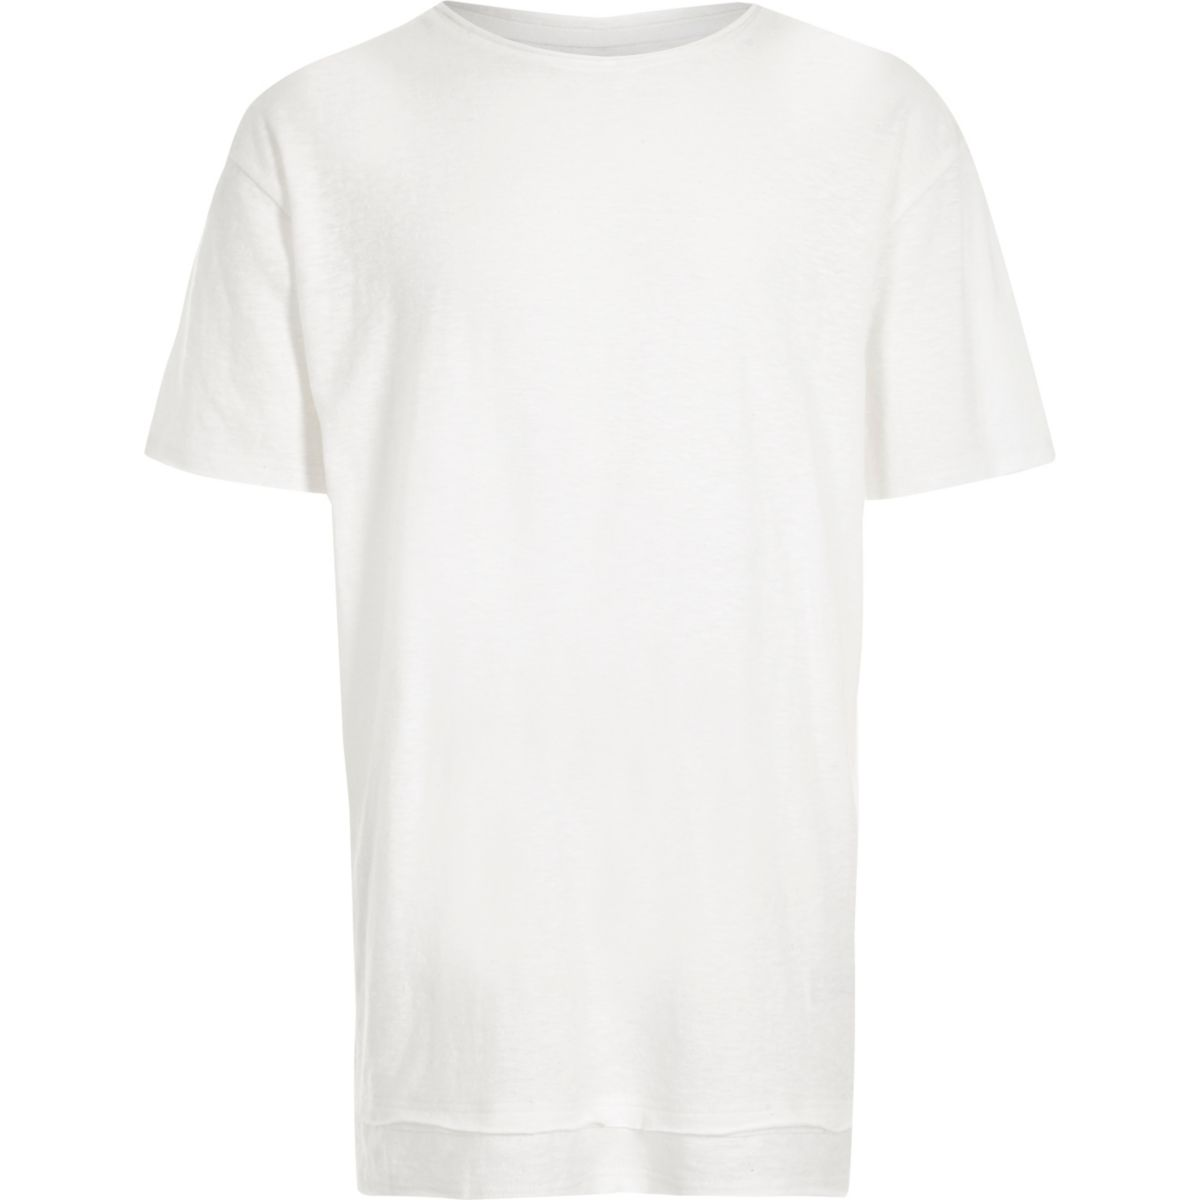 Boys white layered hem T-shirt